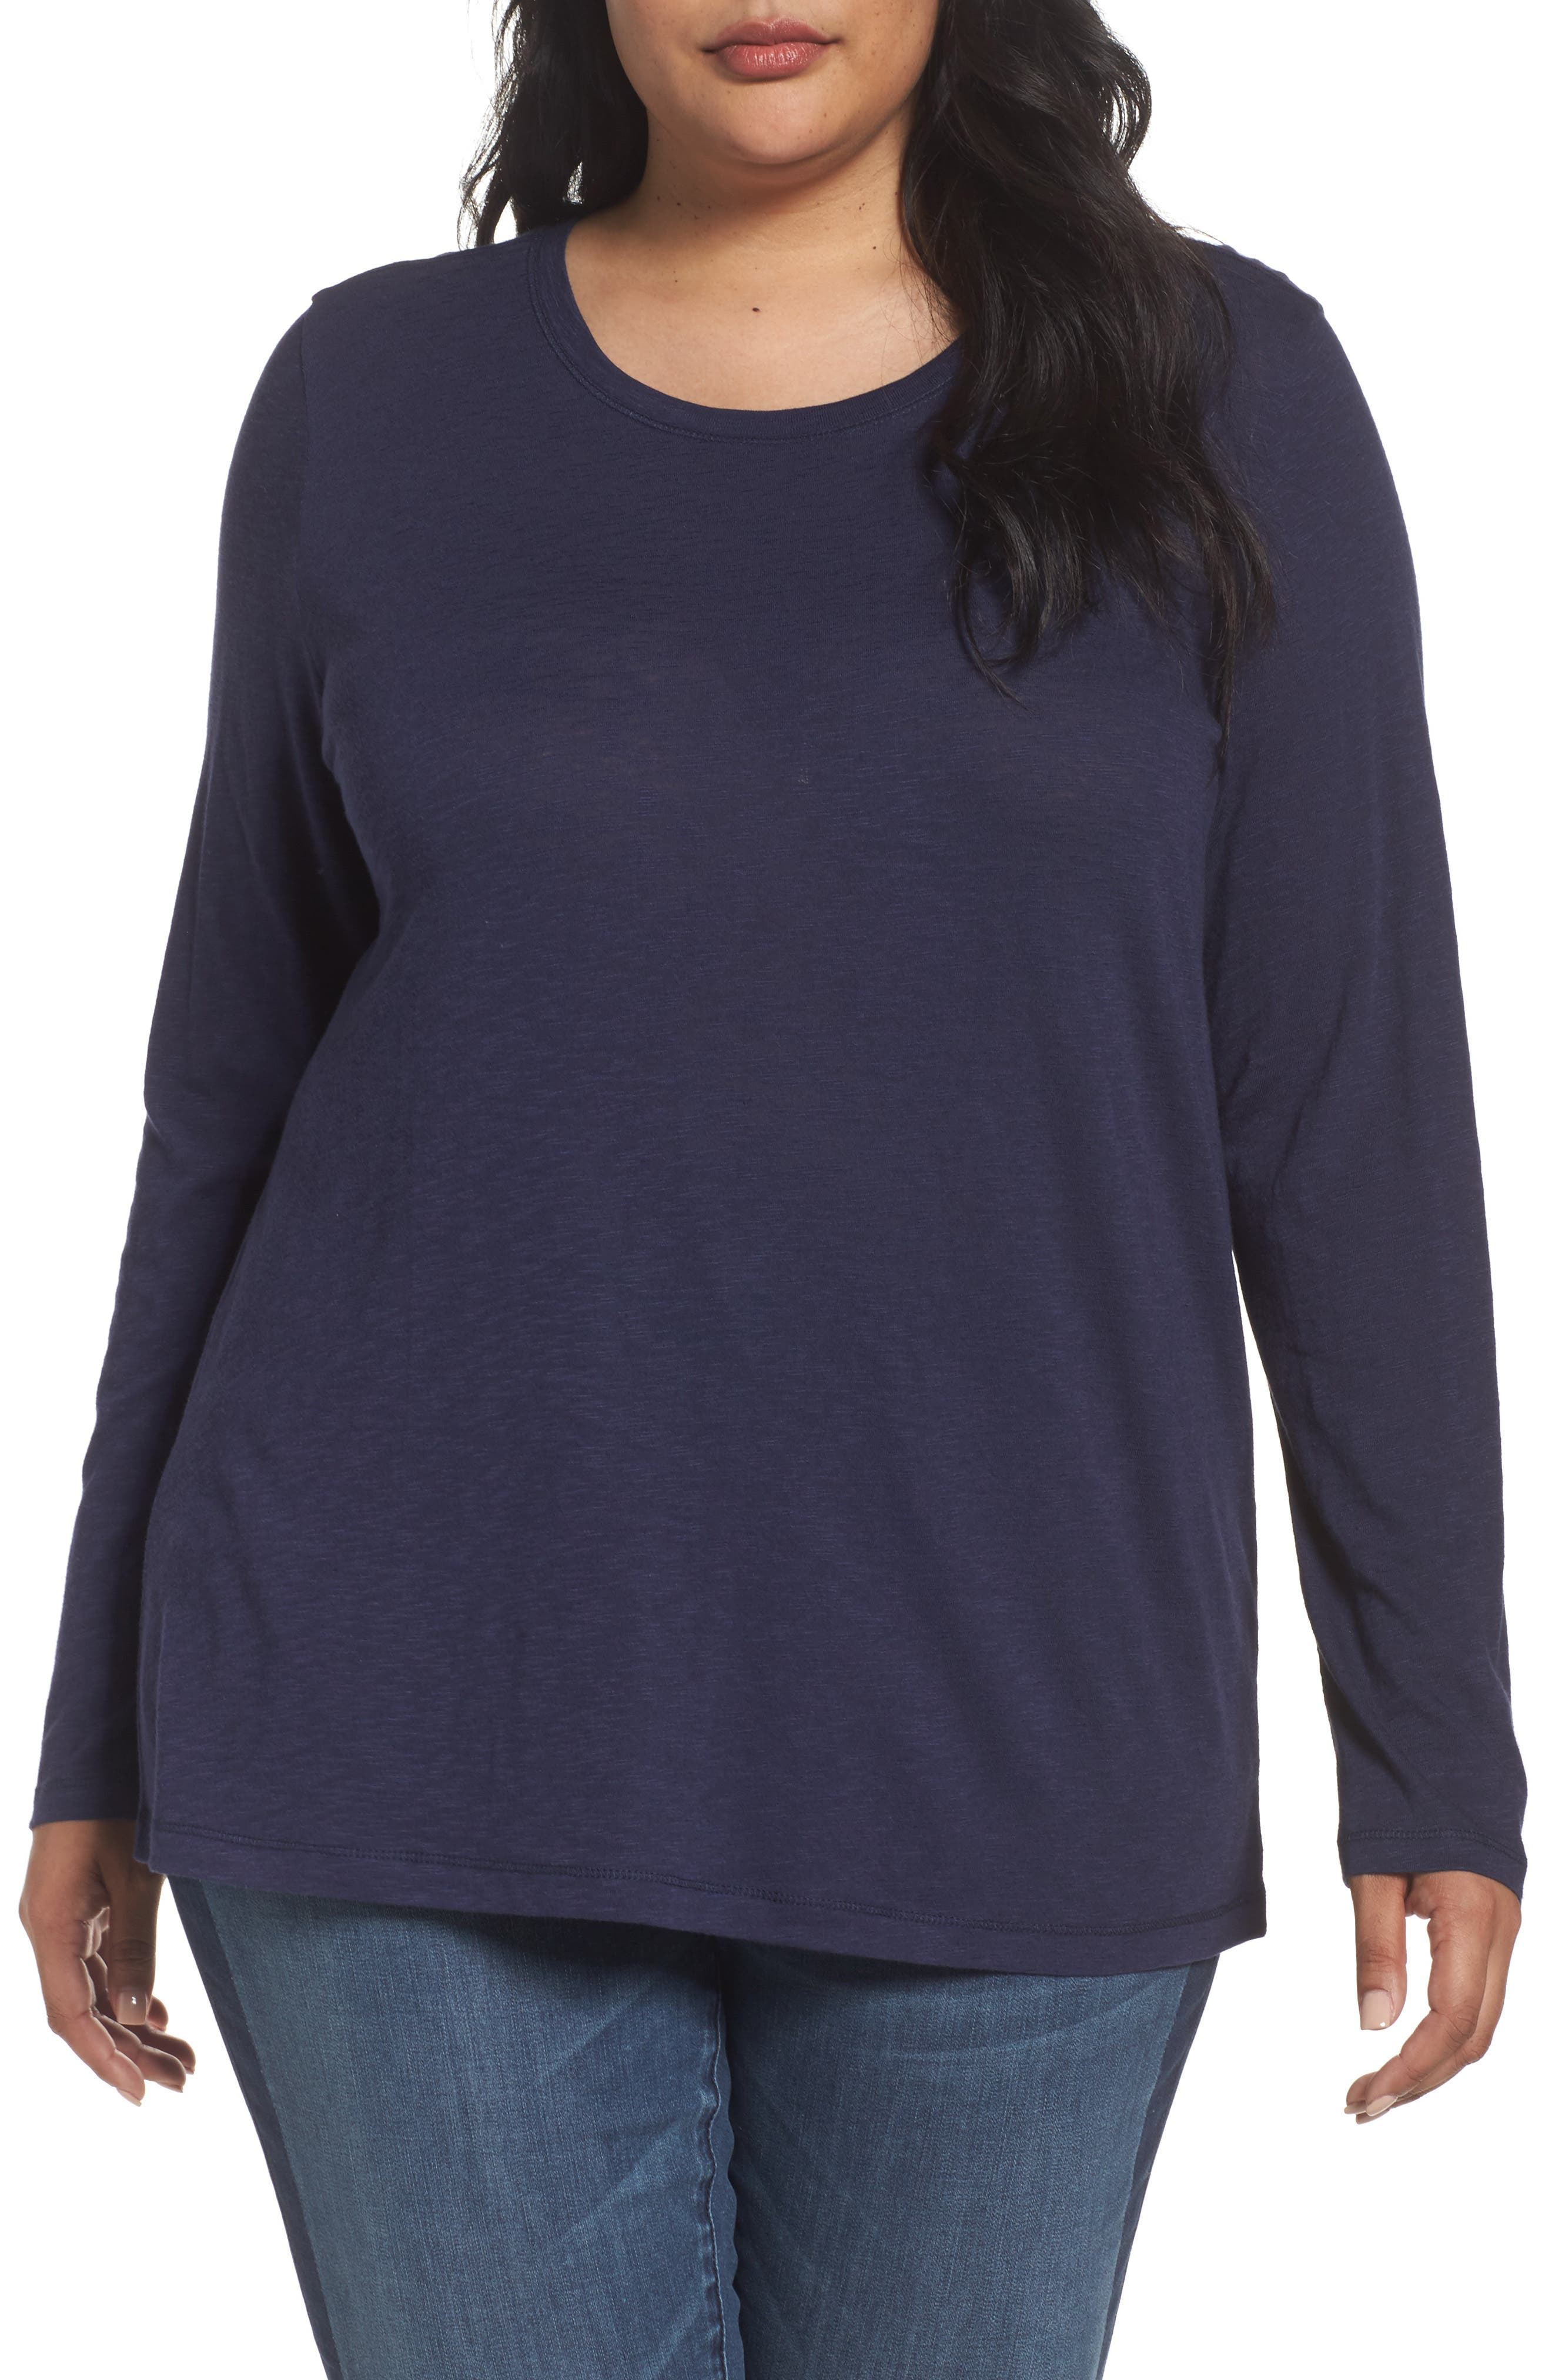 Alternate Image 1 Selected - Caslon® Long Sleeve Crewneck Tee (Plus Size)